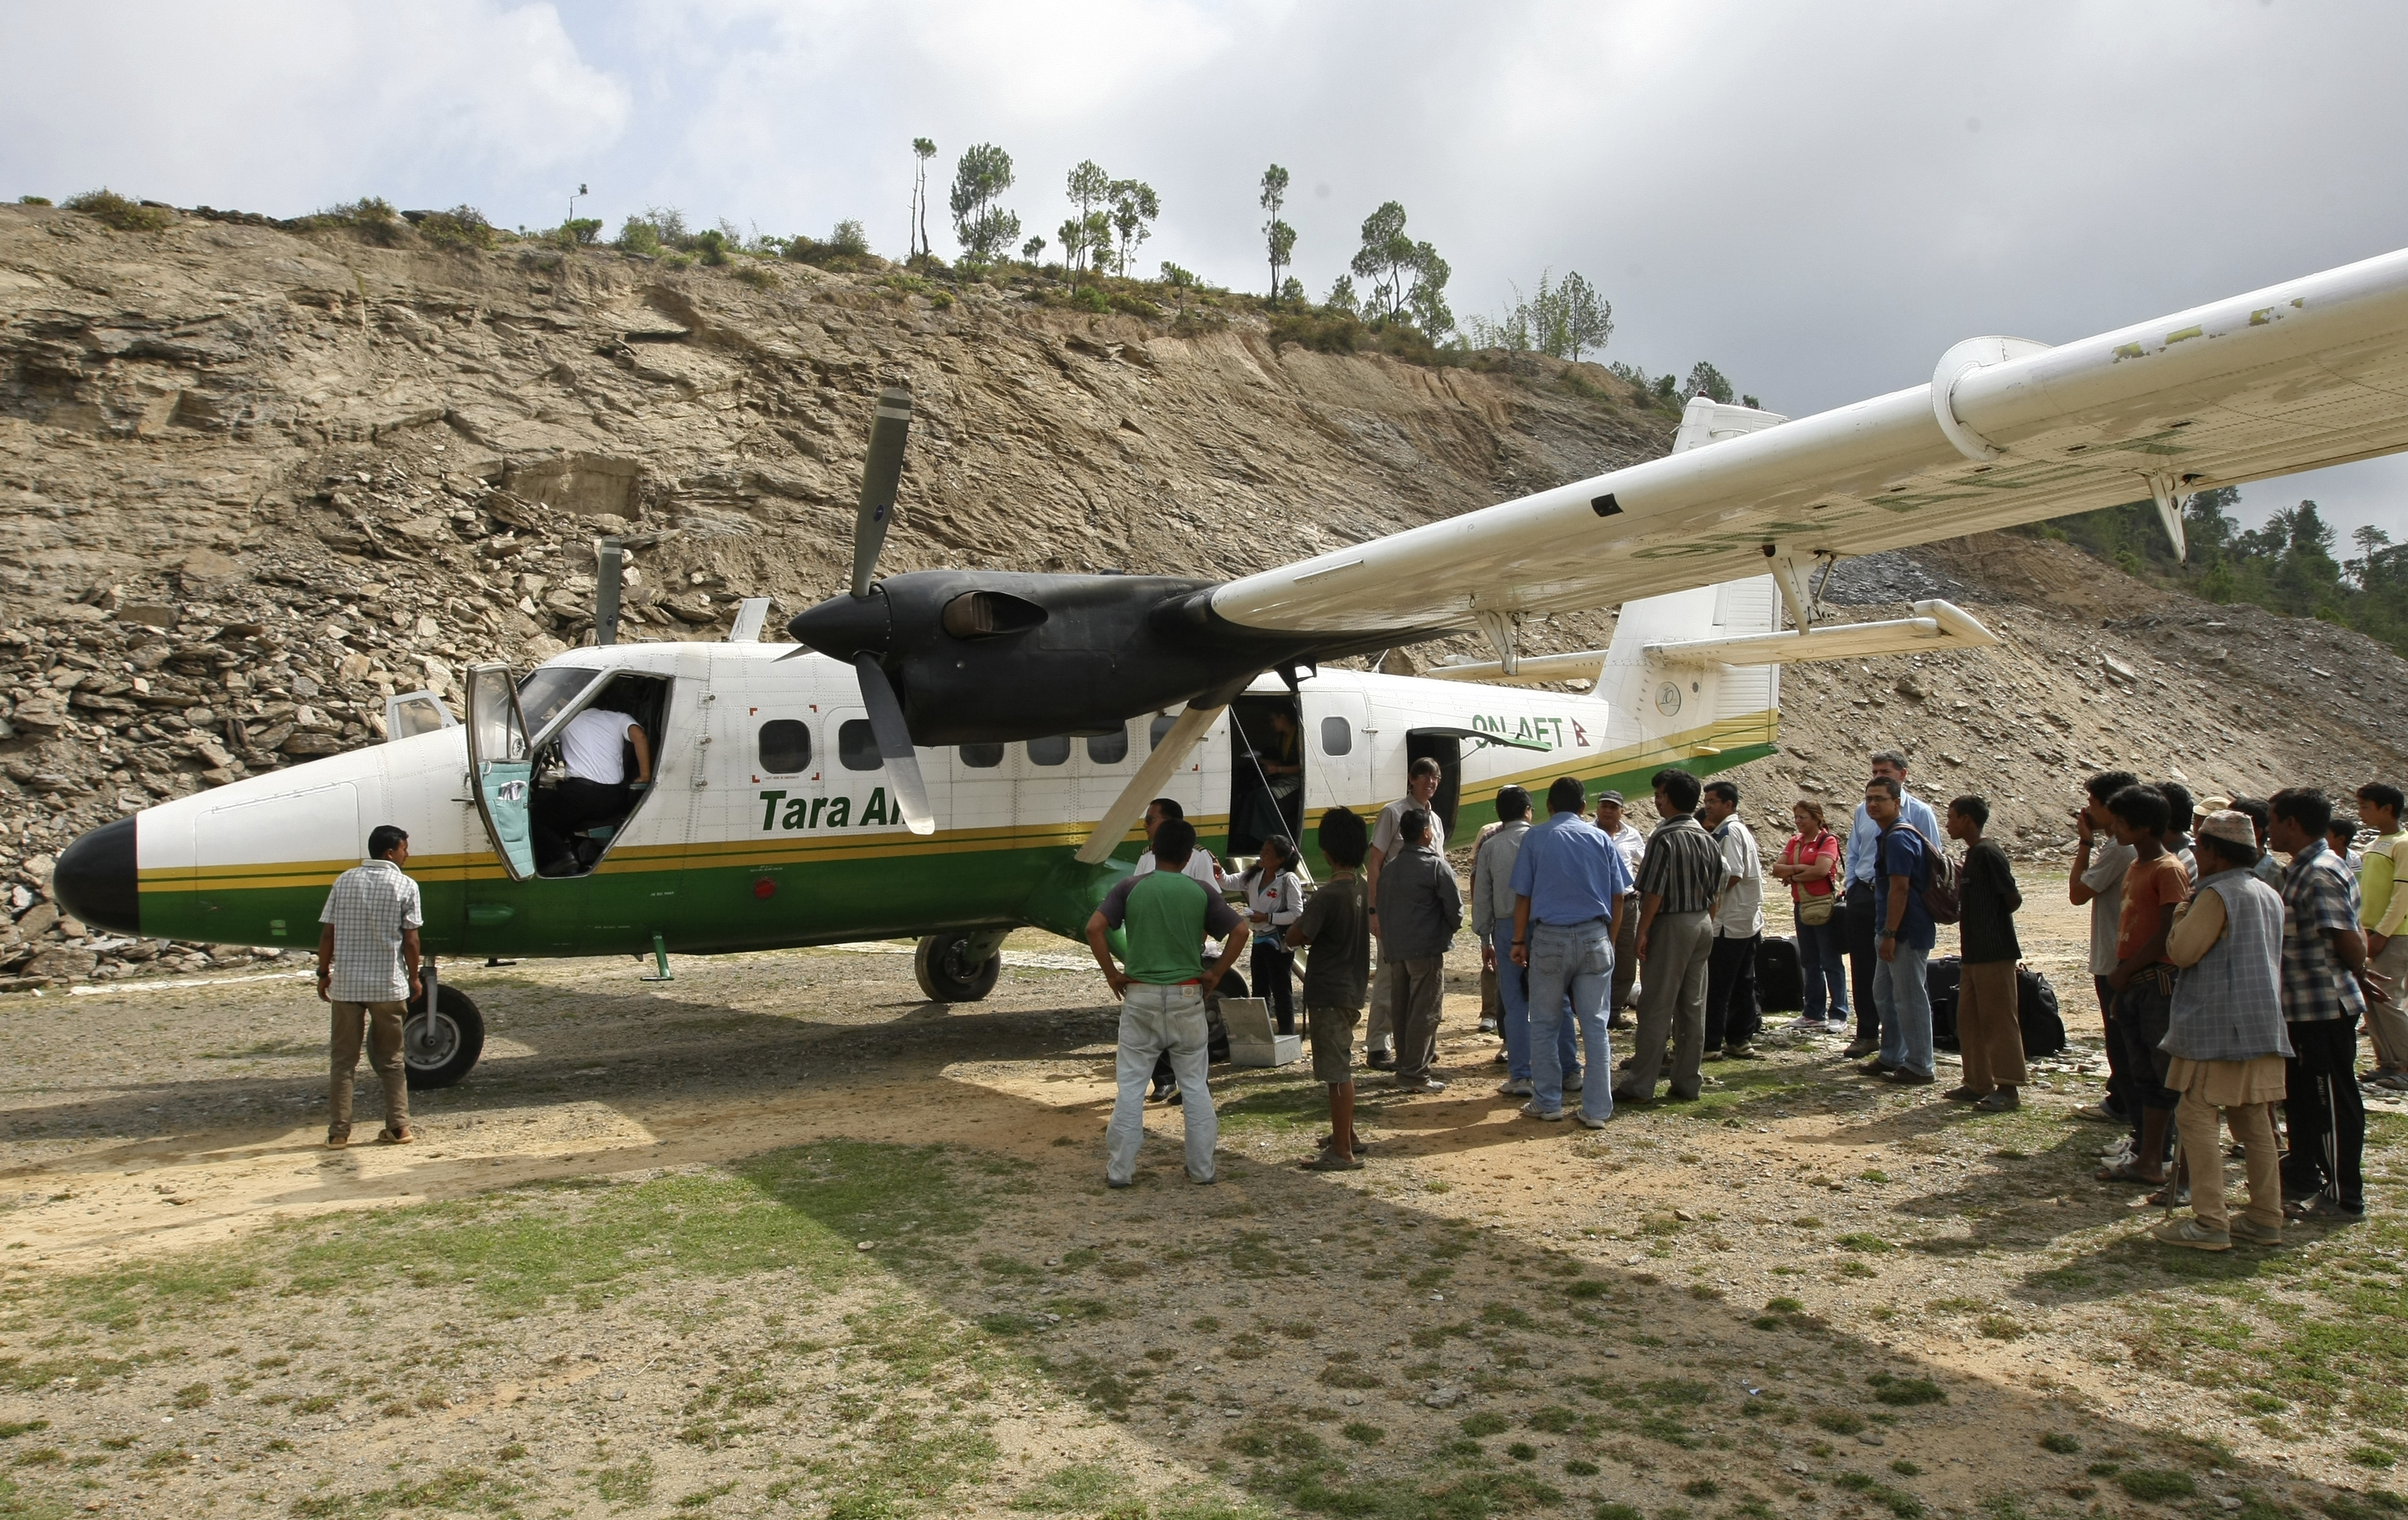 In this photo taken on June 1, 2010, a Tara Air DHC-6 Twin Otter aircraft is seen at the Lamidanda airstrip, some 120 kms east of Kathmandu.